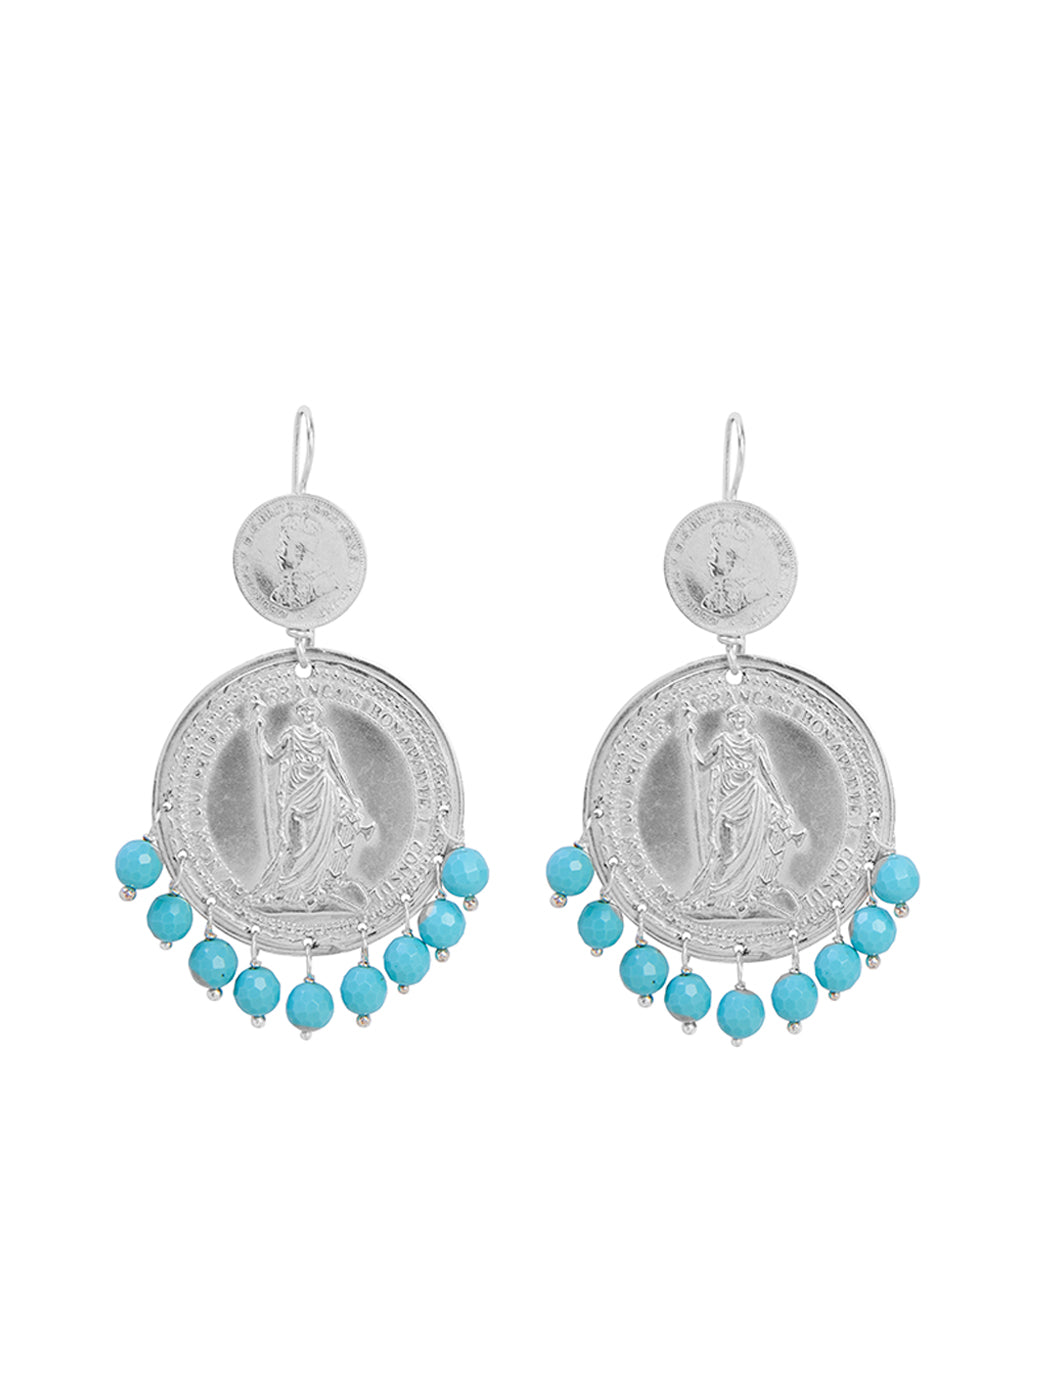 Fiorina Jewellery Marrakesh Earrings Turquoise